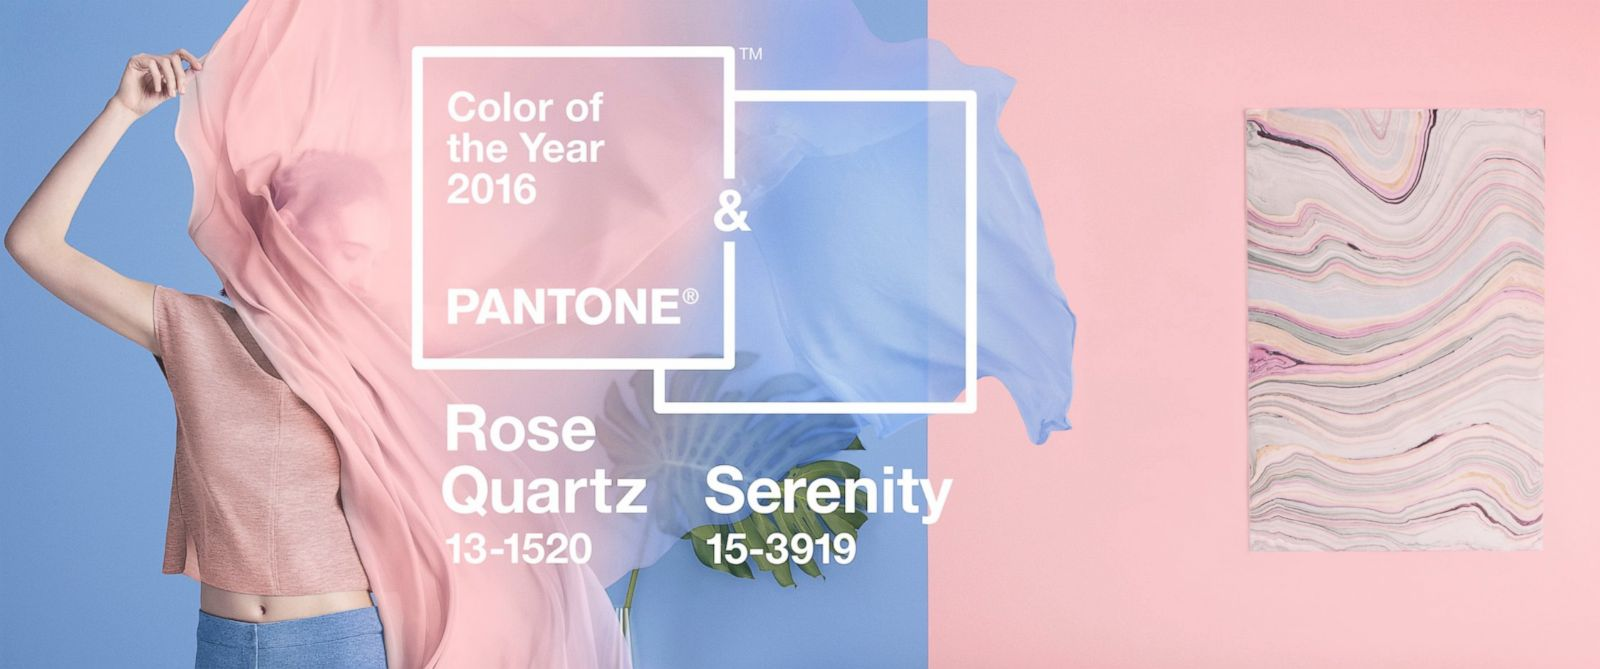 Pantone Color 2016 5th Avenue Goth Pantone Color Of The Year 2016 Rose Quartz Serenity